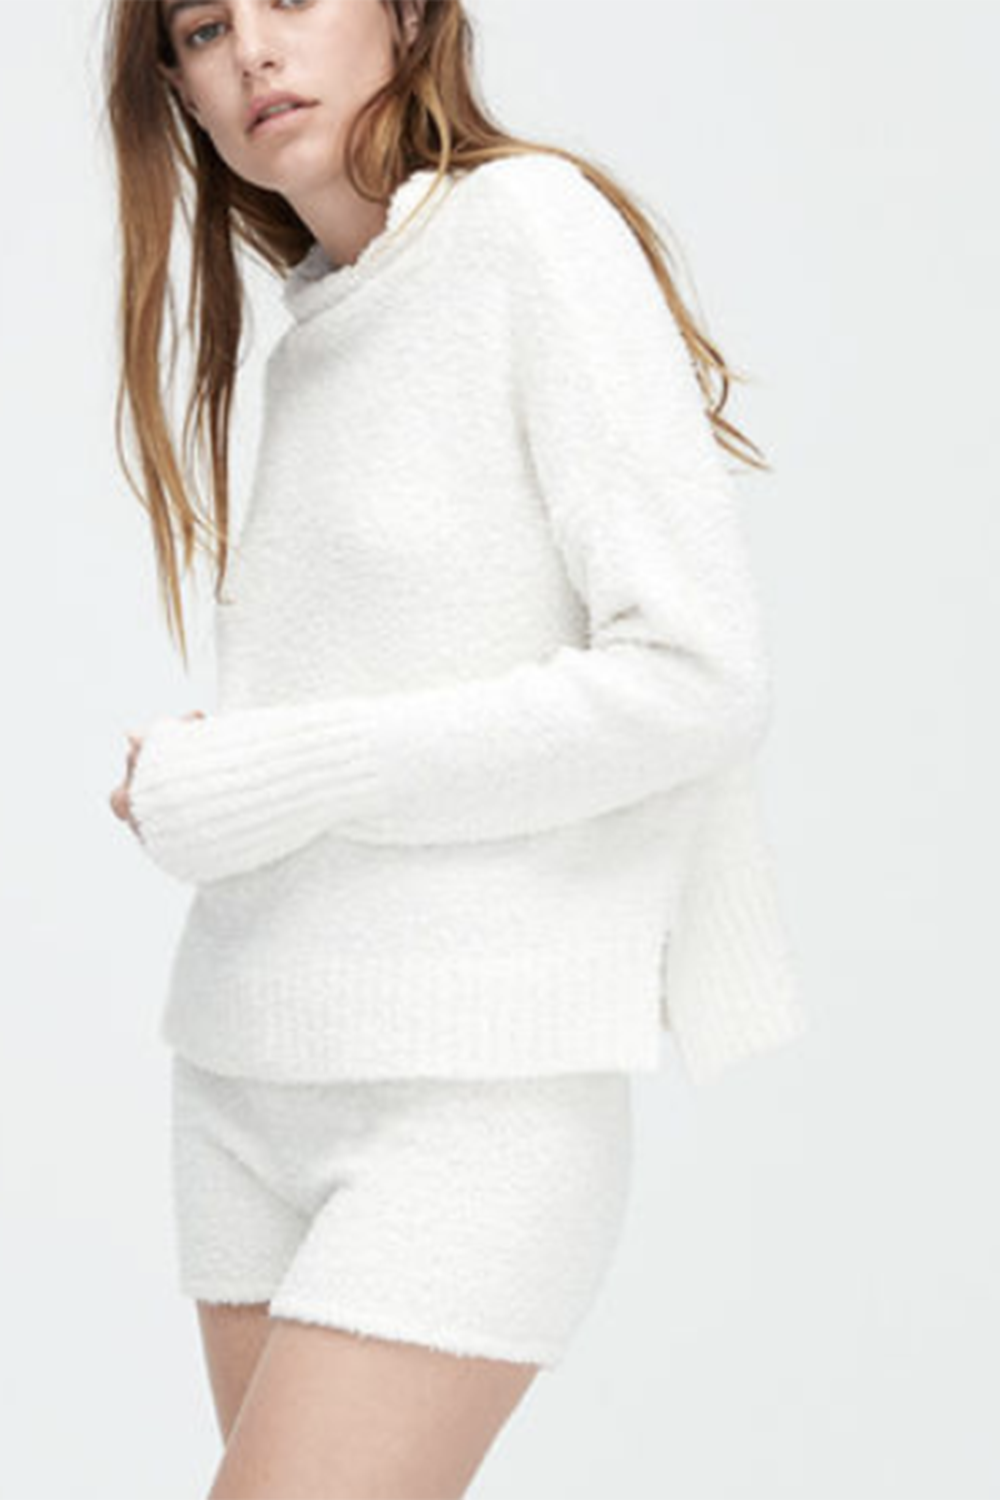 UGG Sage Sweater - Cream